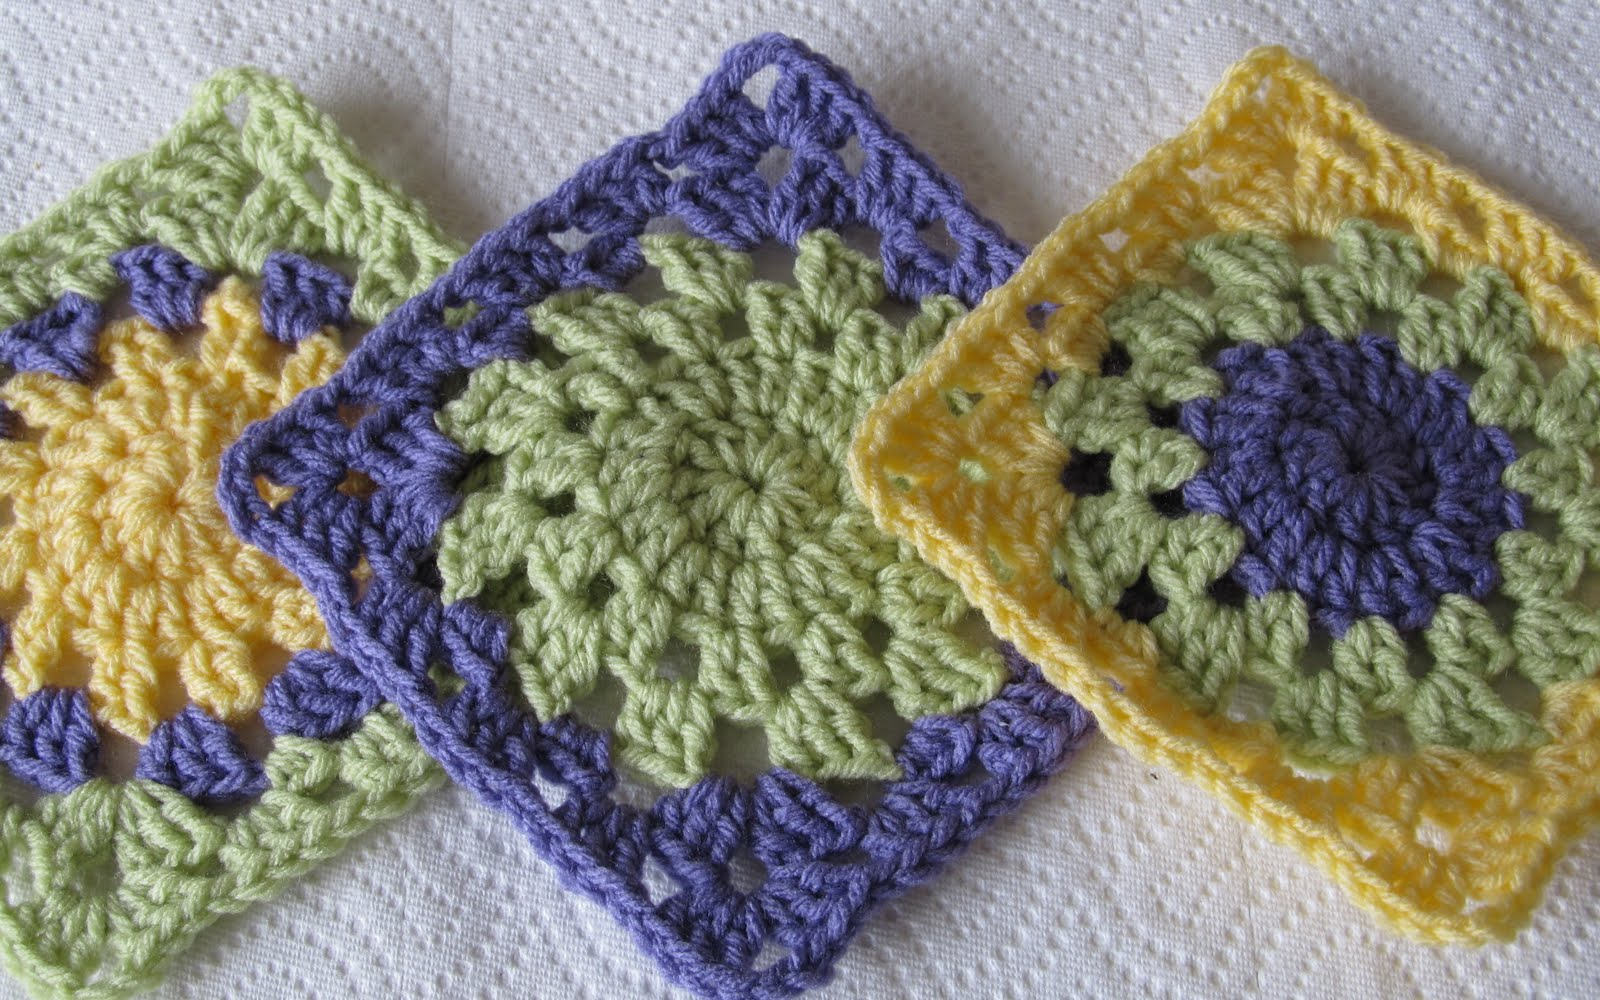 Crocheting For Charity Free Patterns : ... Crochet and Knit: SmoothFox Charity Square Nbr 1 thru 4 - Free